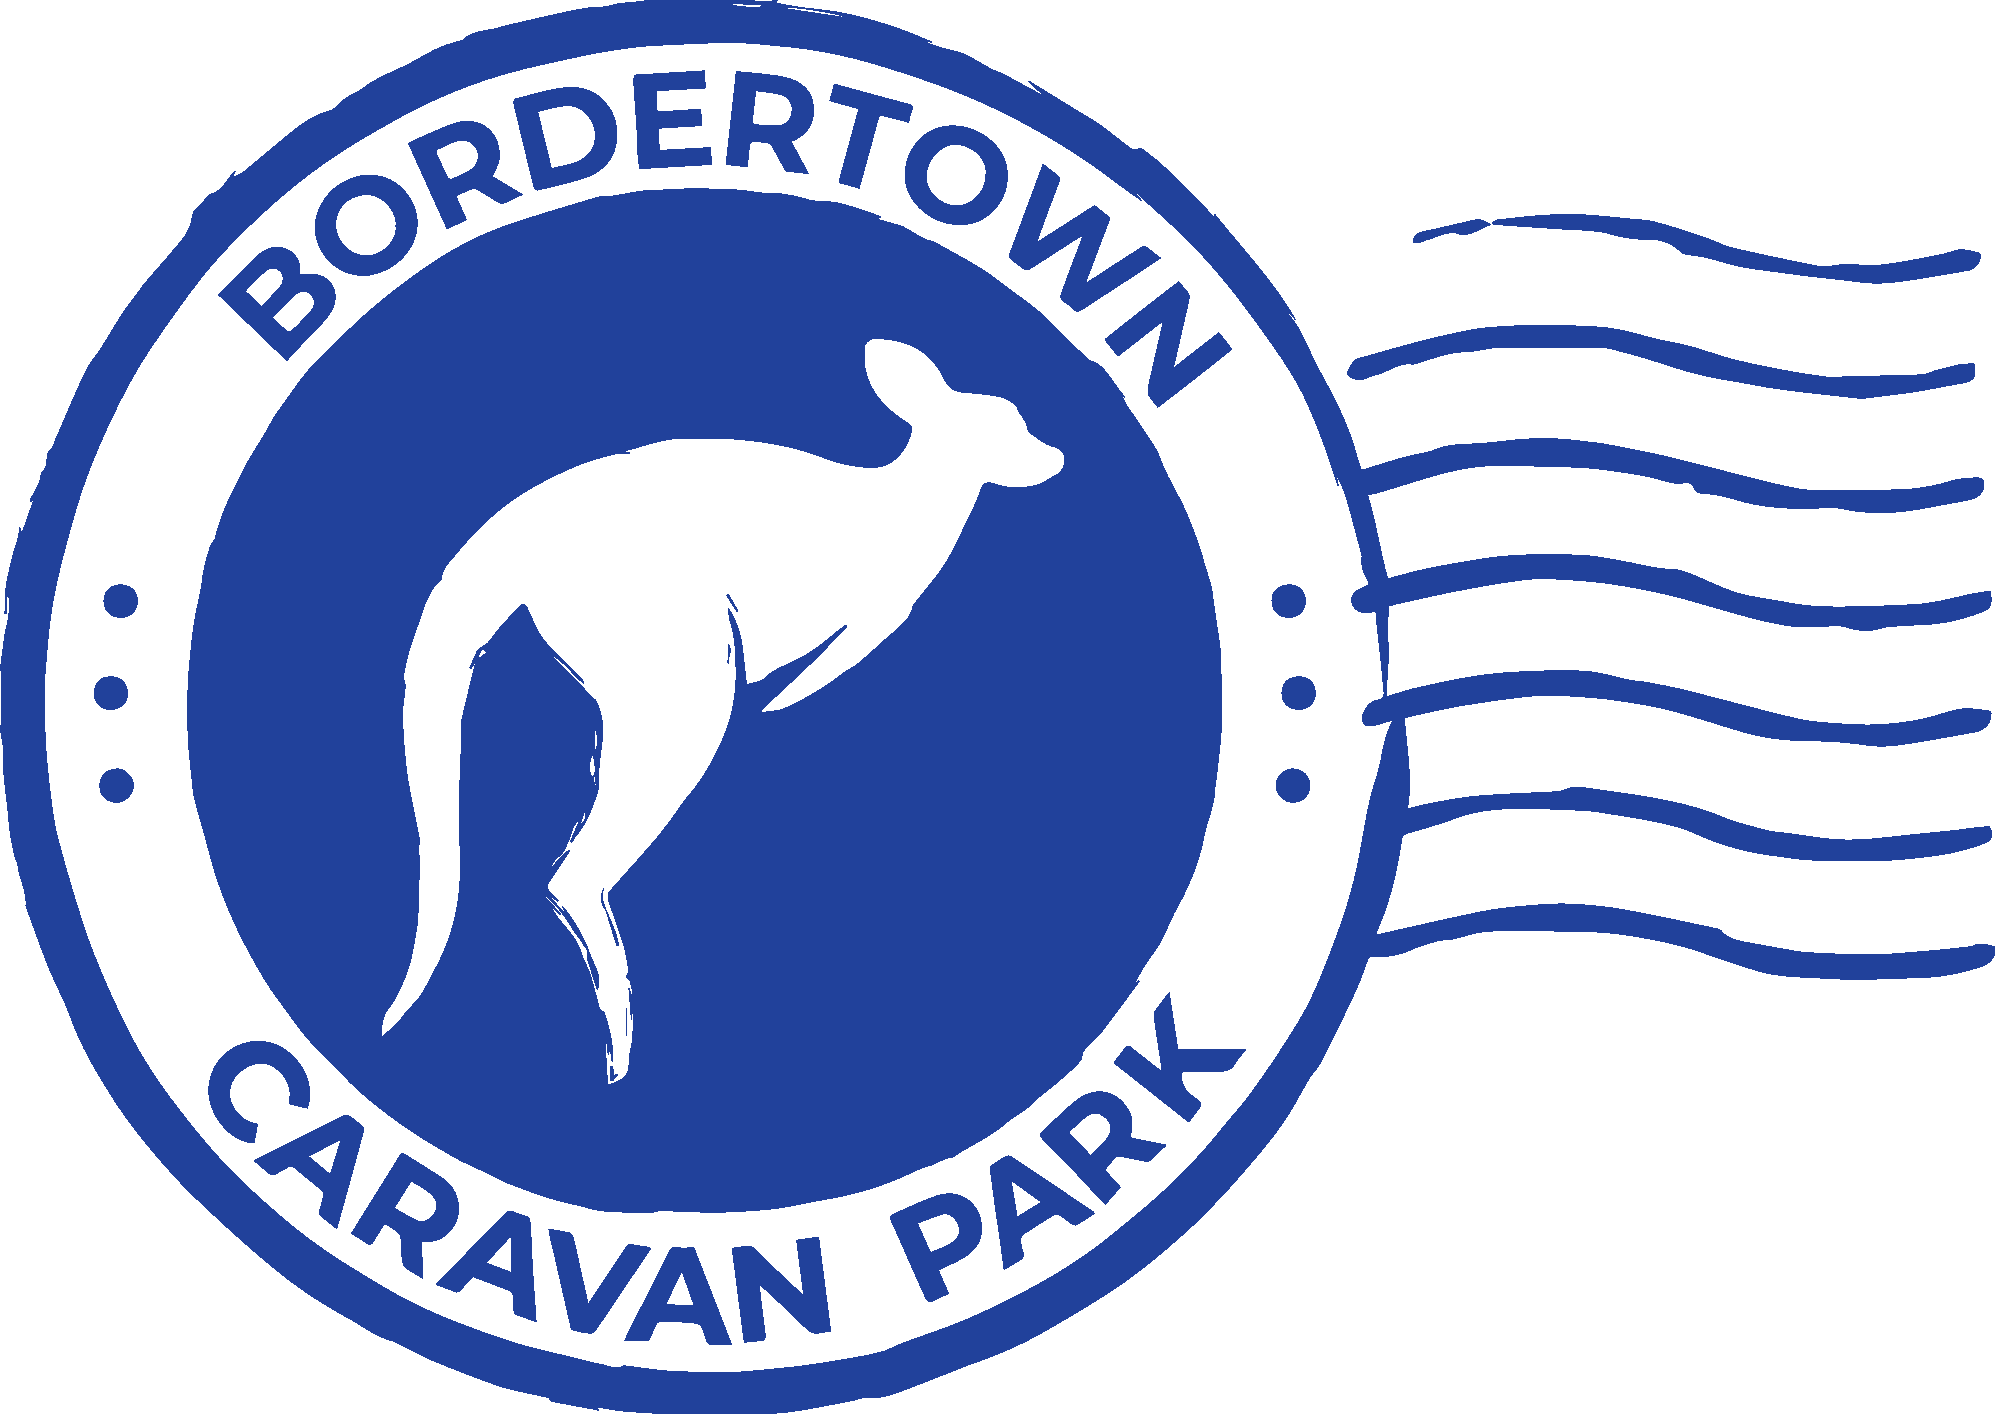 Bordertown Caravan Park